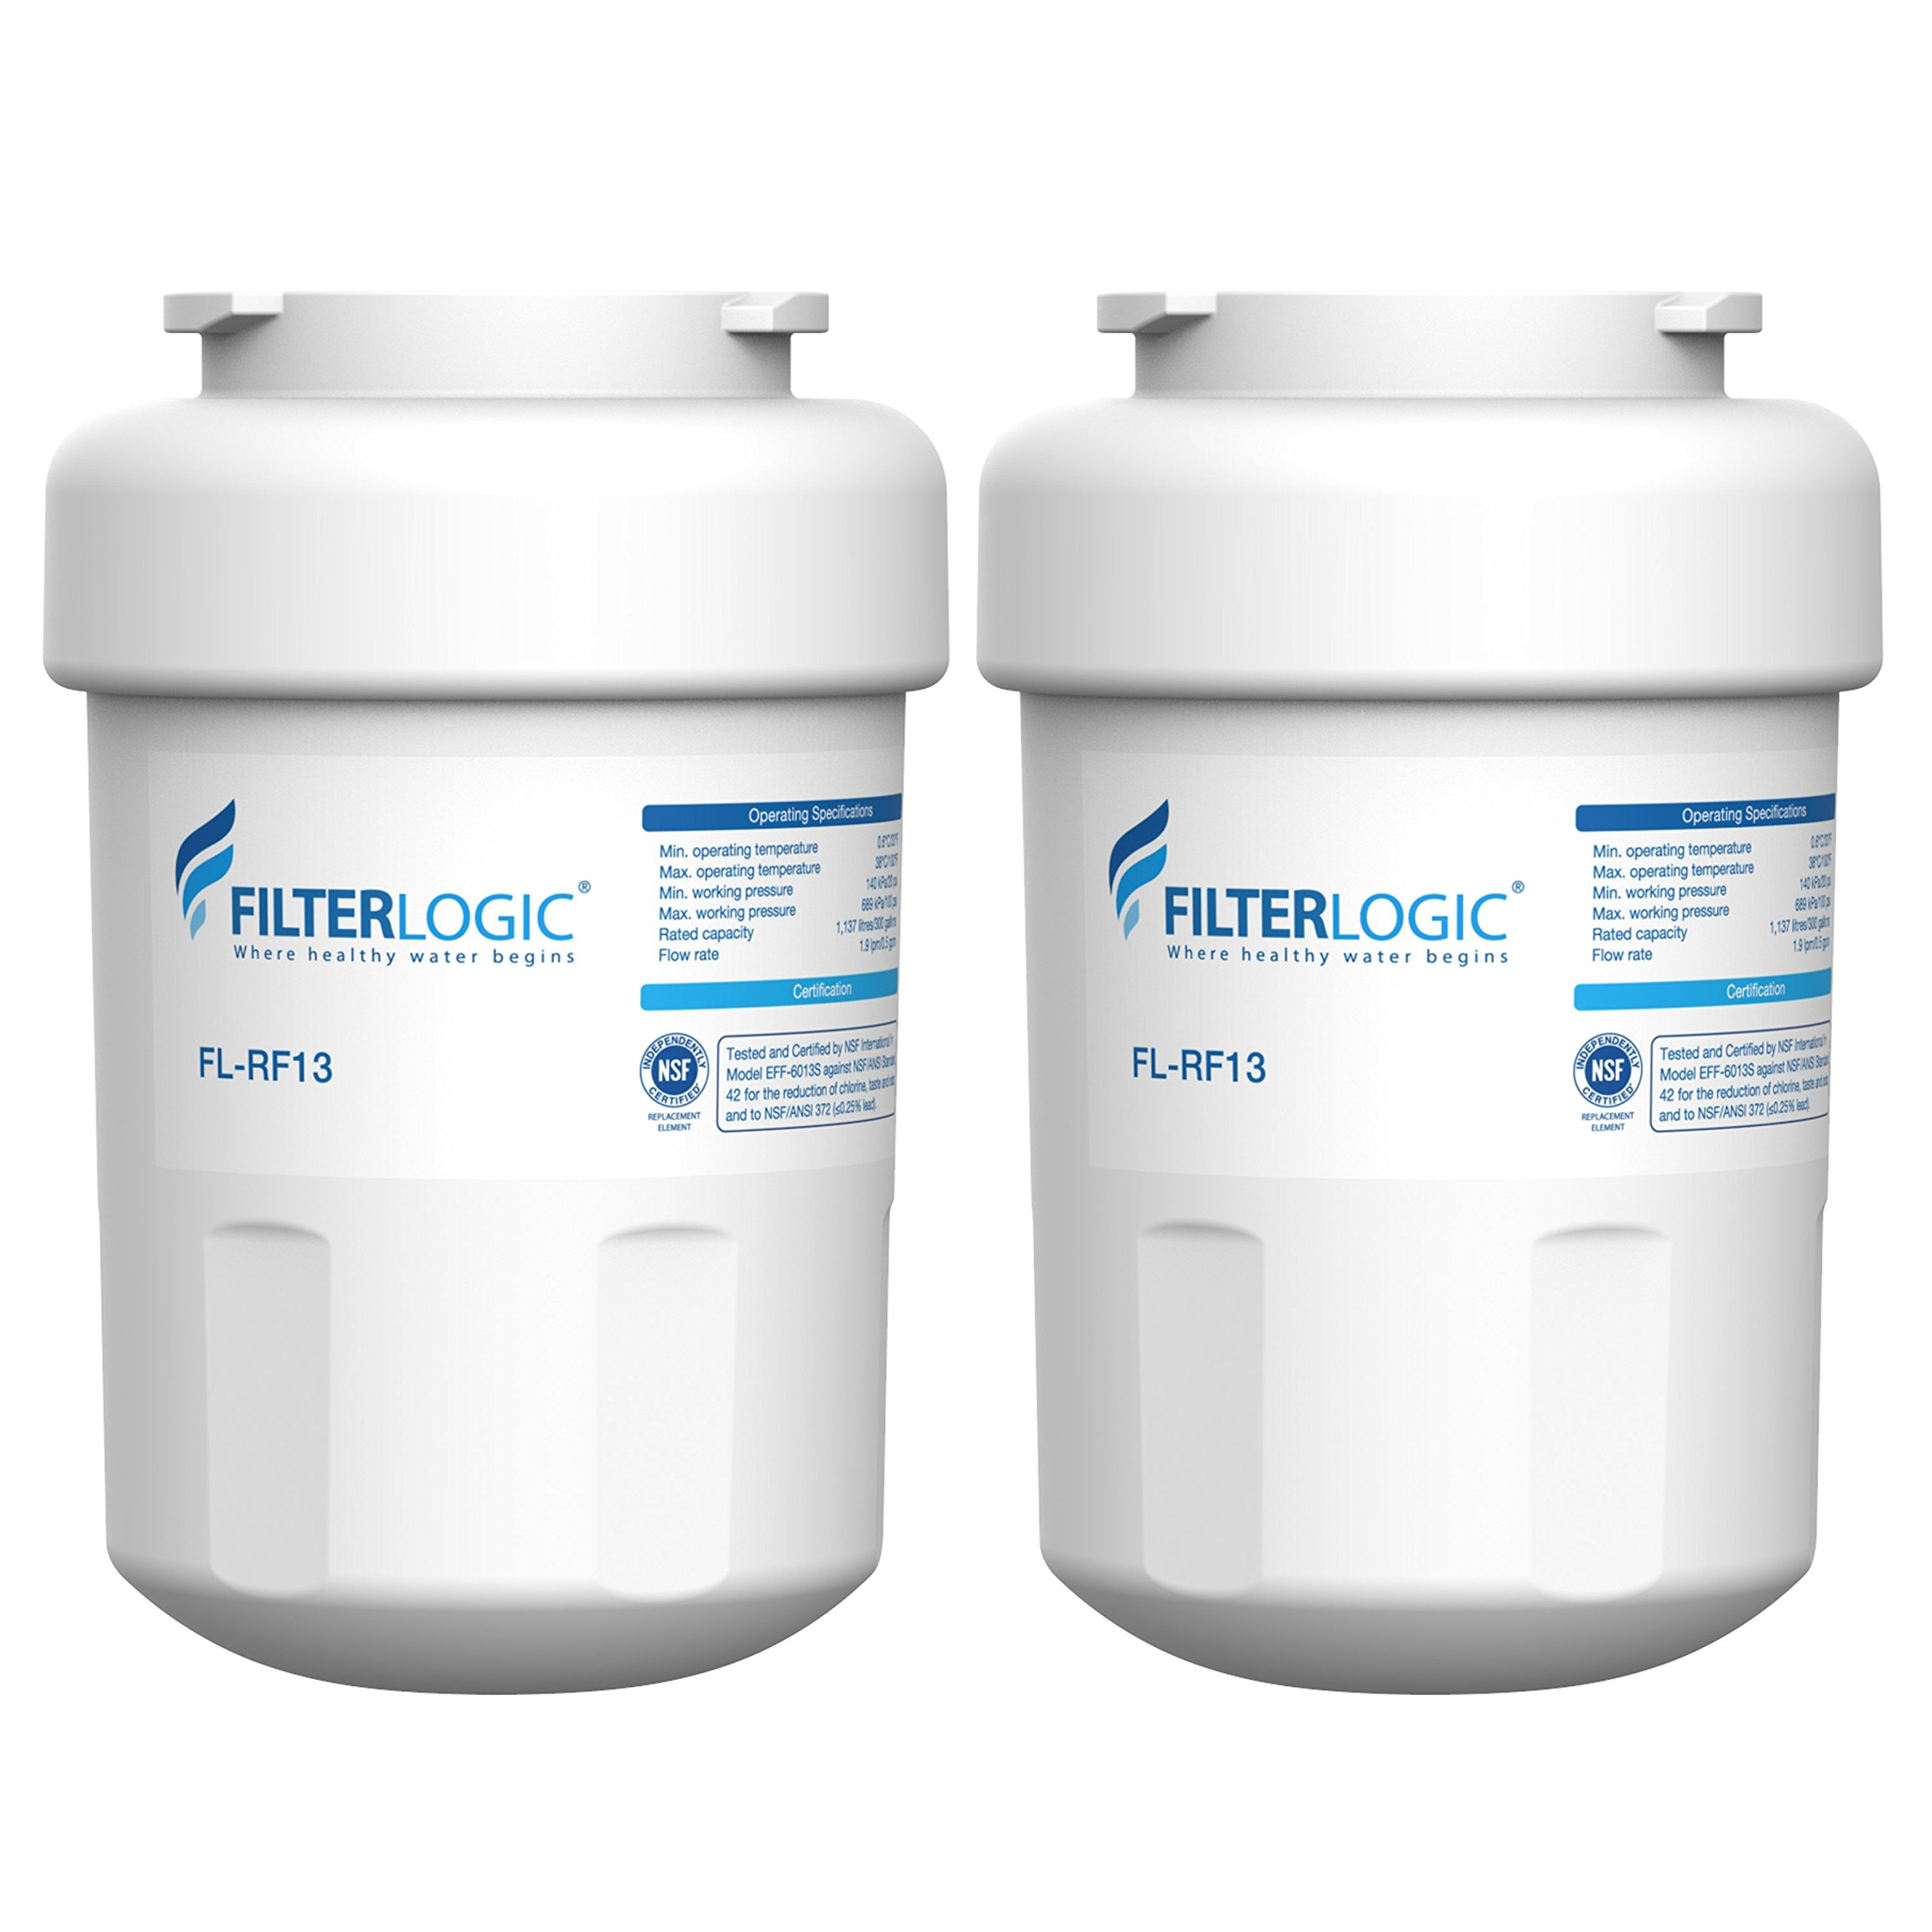 FilterLogic MWF Replacement Refrigerator Water Filter, Compatible with GE MWF, SmartWater, MWFP, MWFA, GWF, HDX FMG-1, WFC1201, GSE25GSHECSS, PC75009, RWF1060, 197D6321P006, 2 Pack